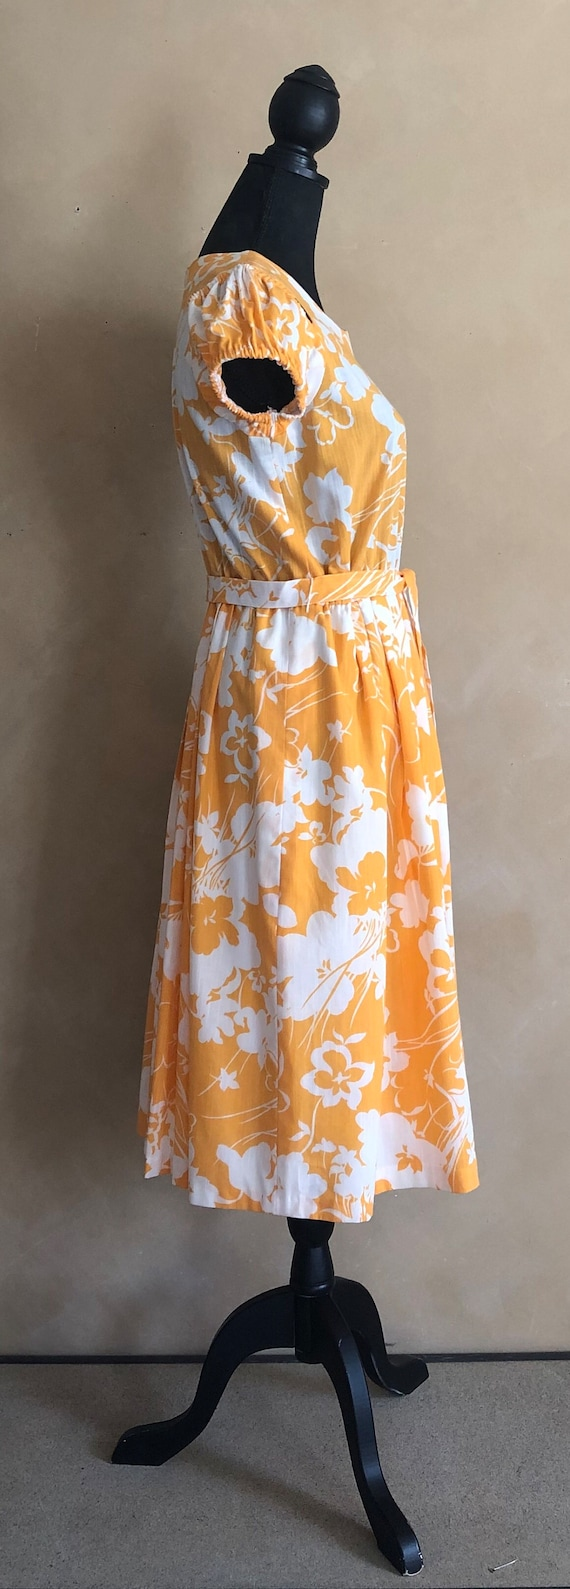 Vintage 70's Marigold  Yellow Floral Dress - image 6